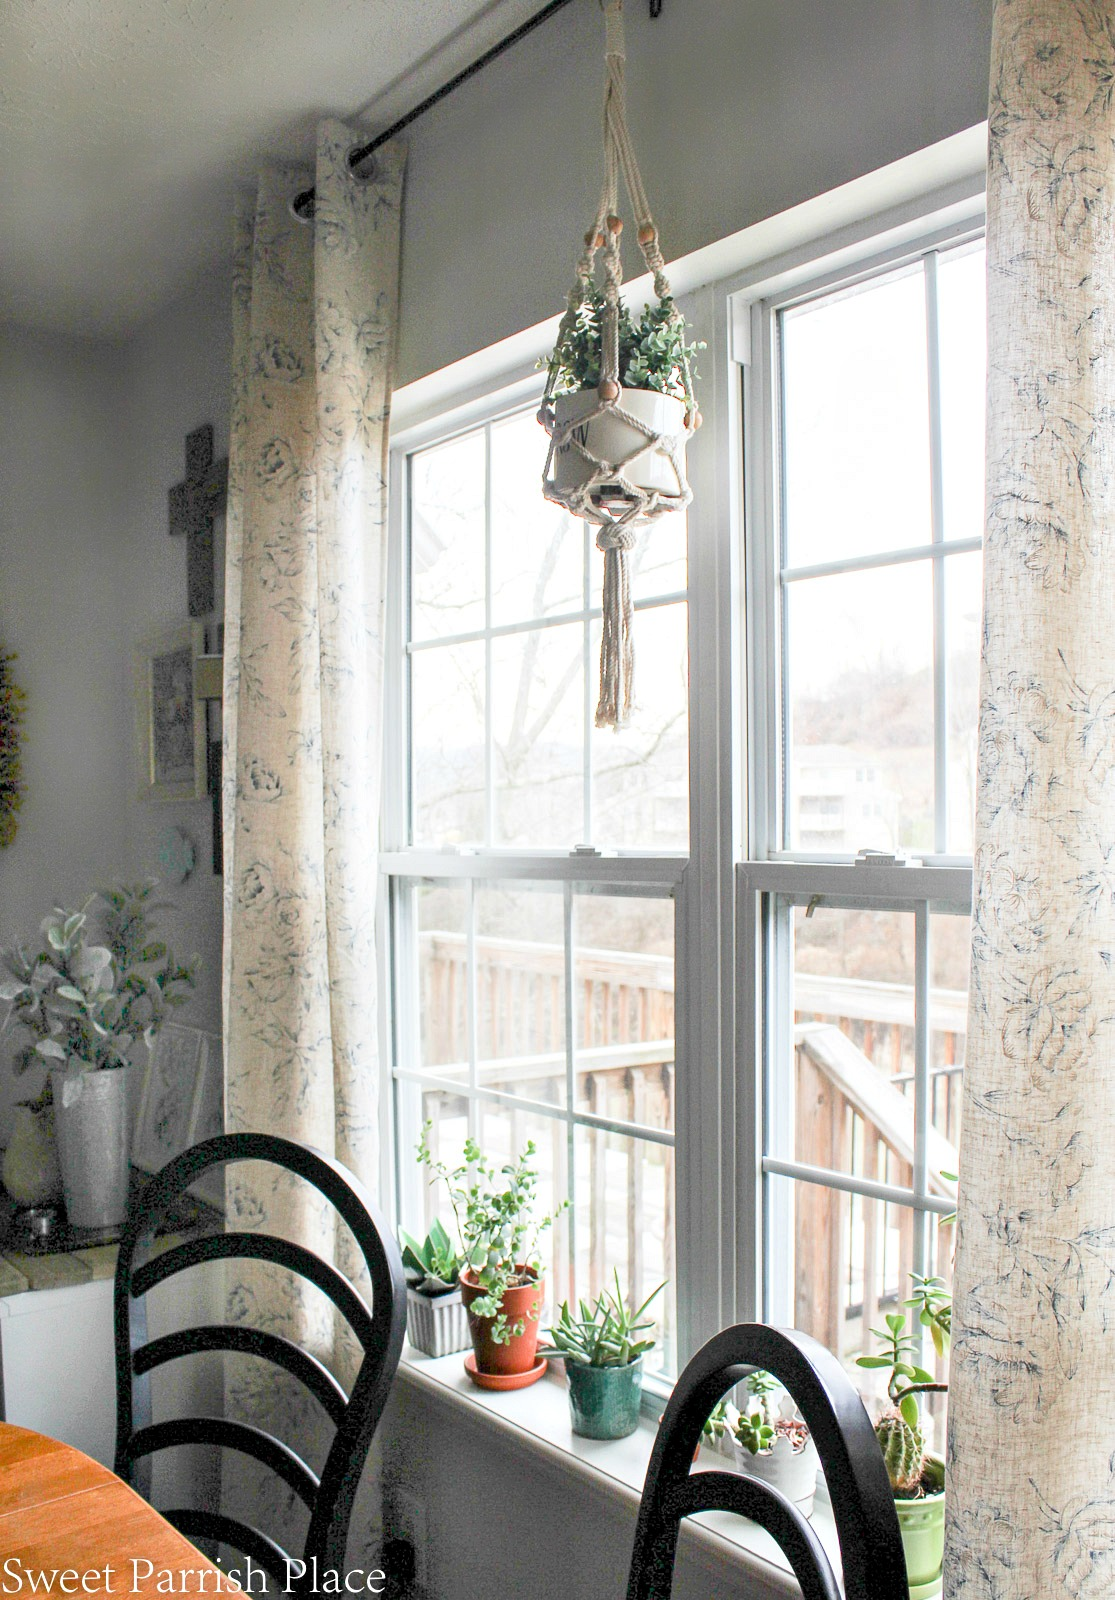 window ledge with plants